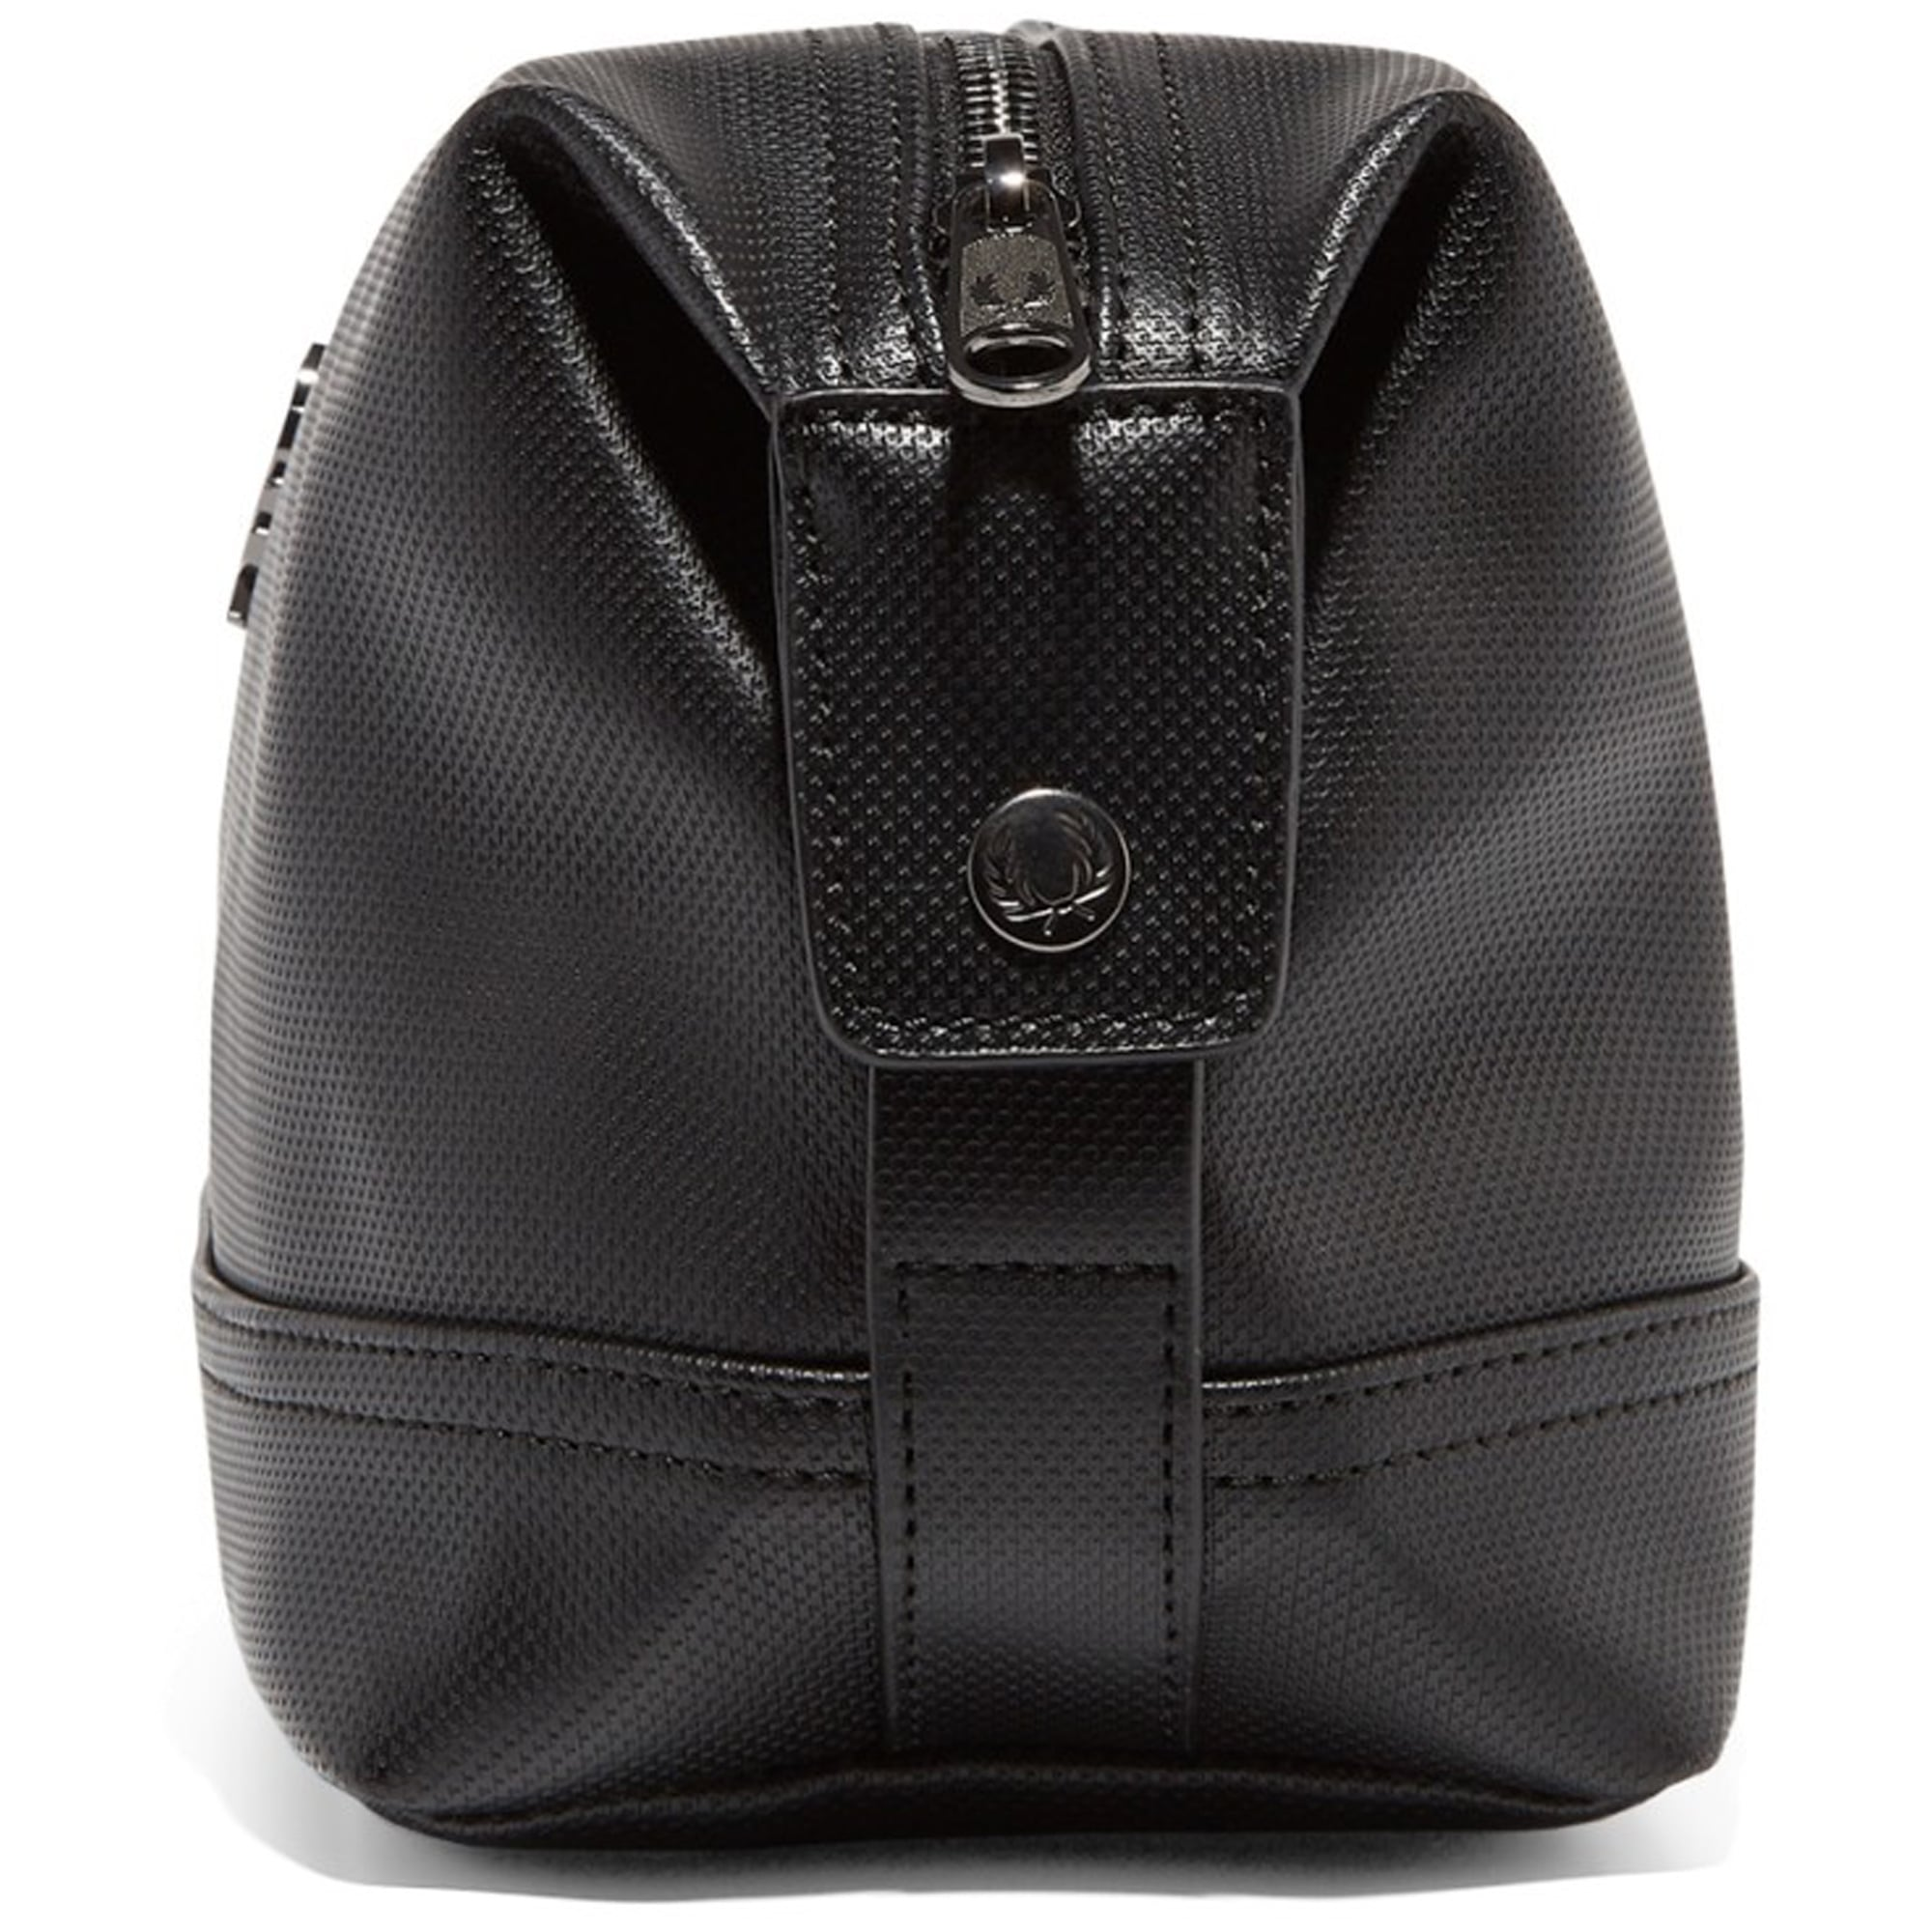 fred-perry-authentic-black-textured-travel-bag-p31197-122305_image